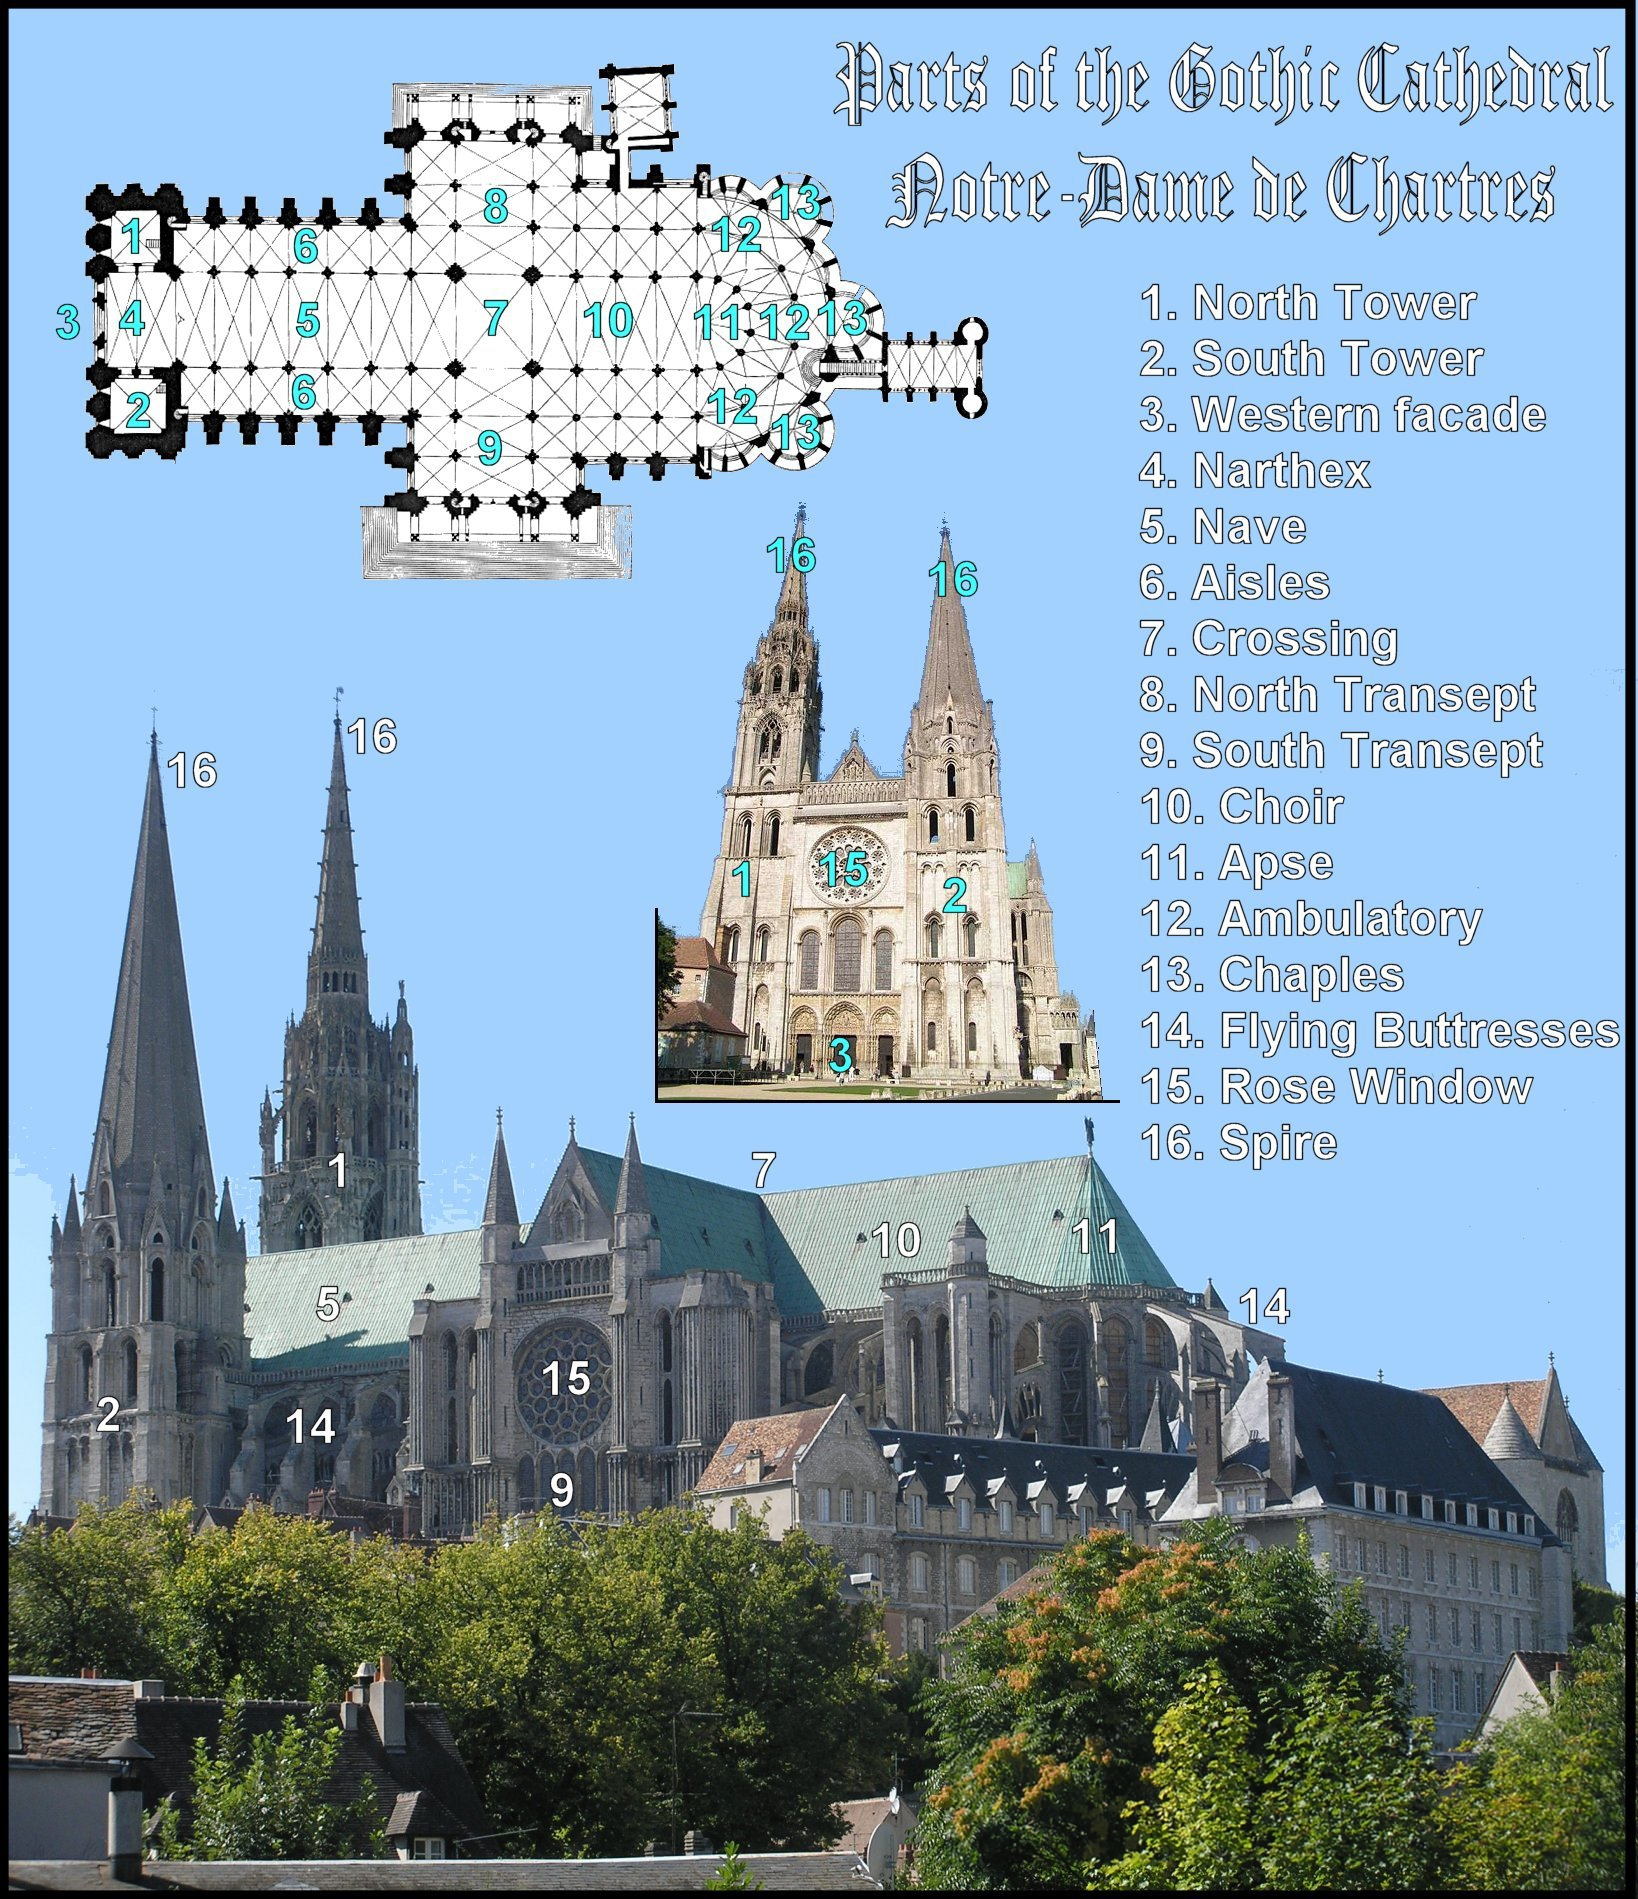 gothic architecture key contribution middle ages Architecture of the middle ages hum100 introduction to the humanities introduction when thinking of medieval or gothic architecture, one can't help but think about the giant castles and.